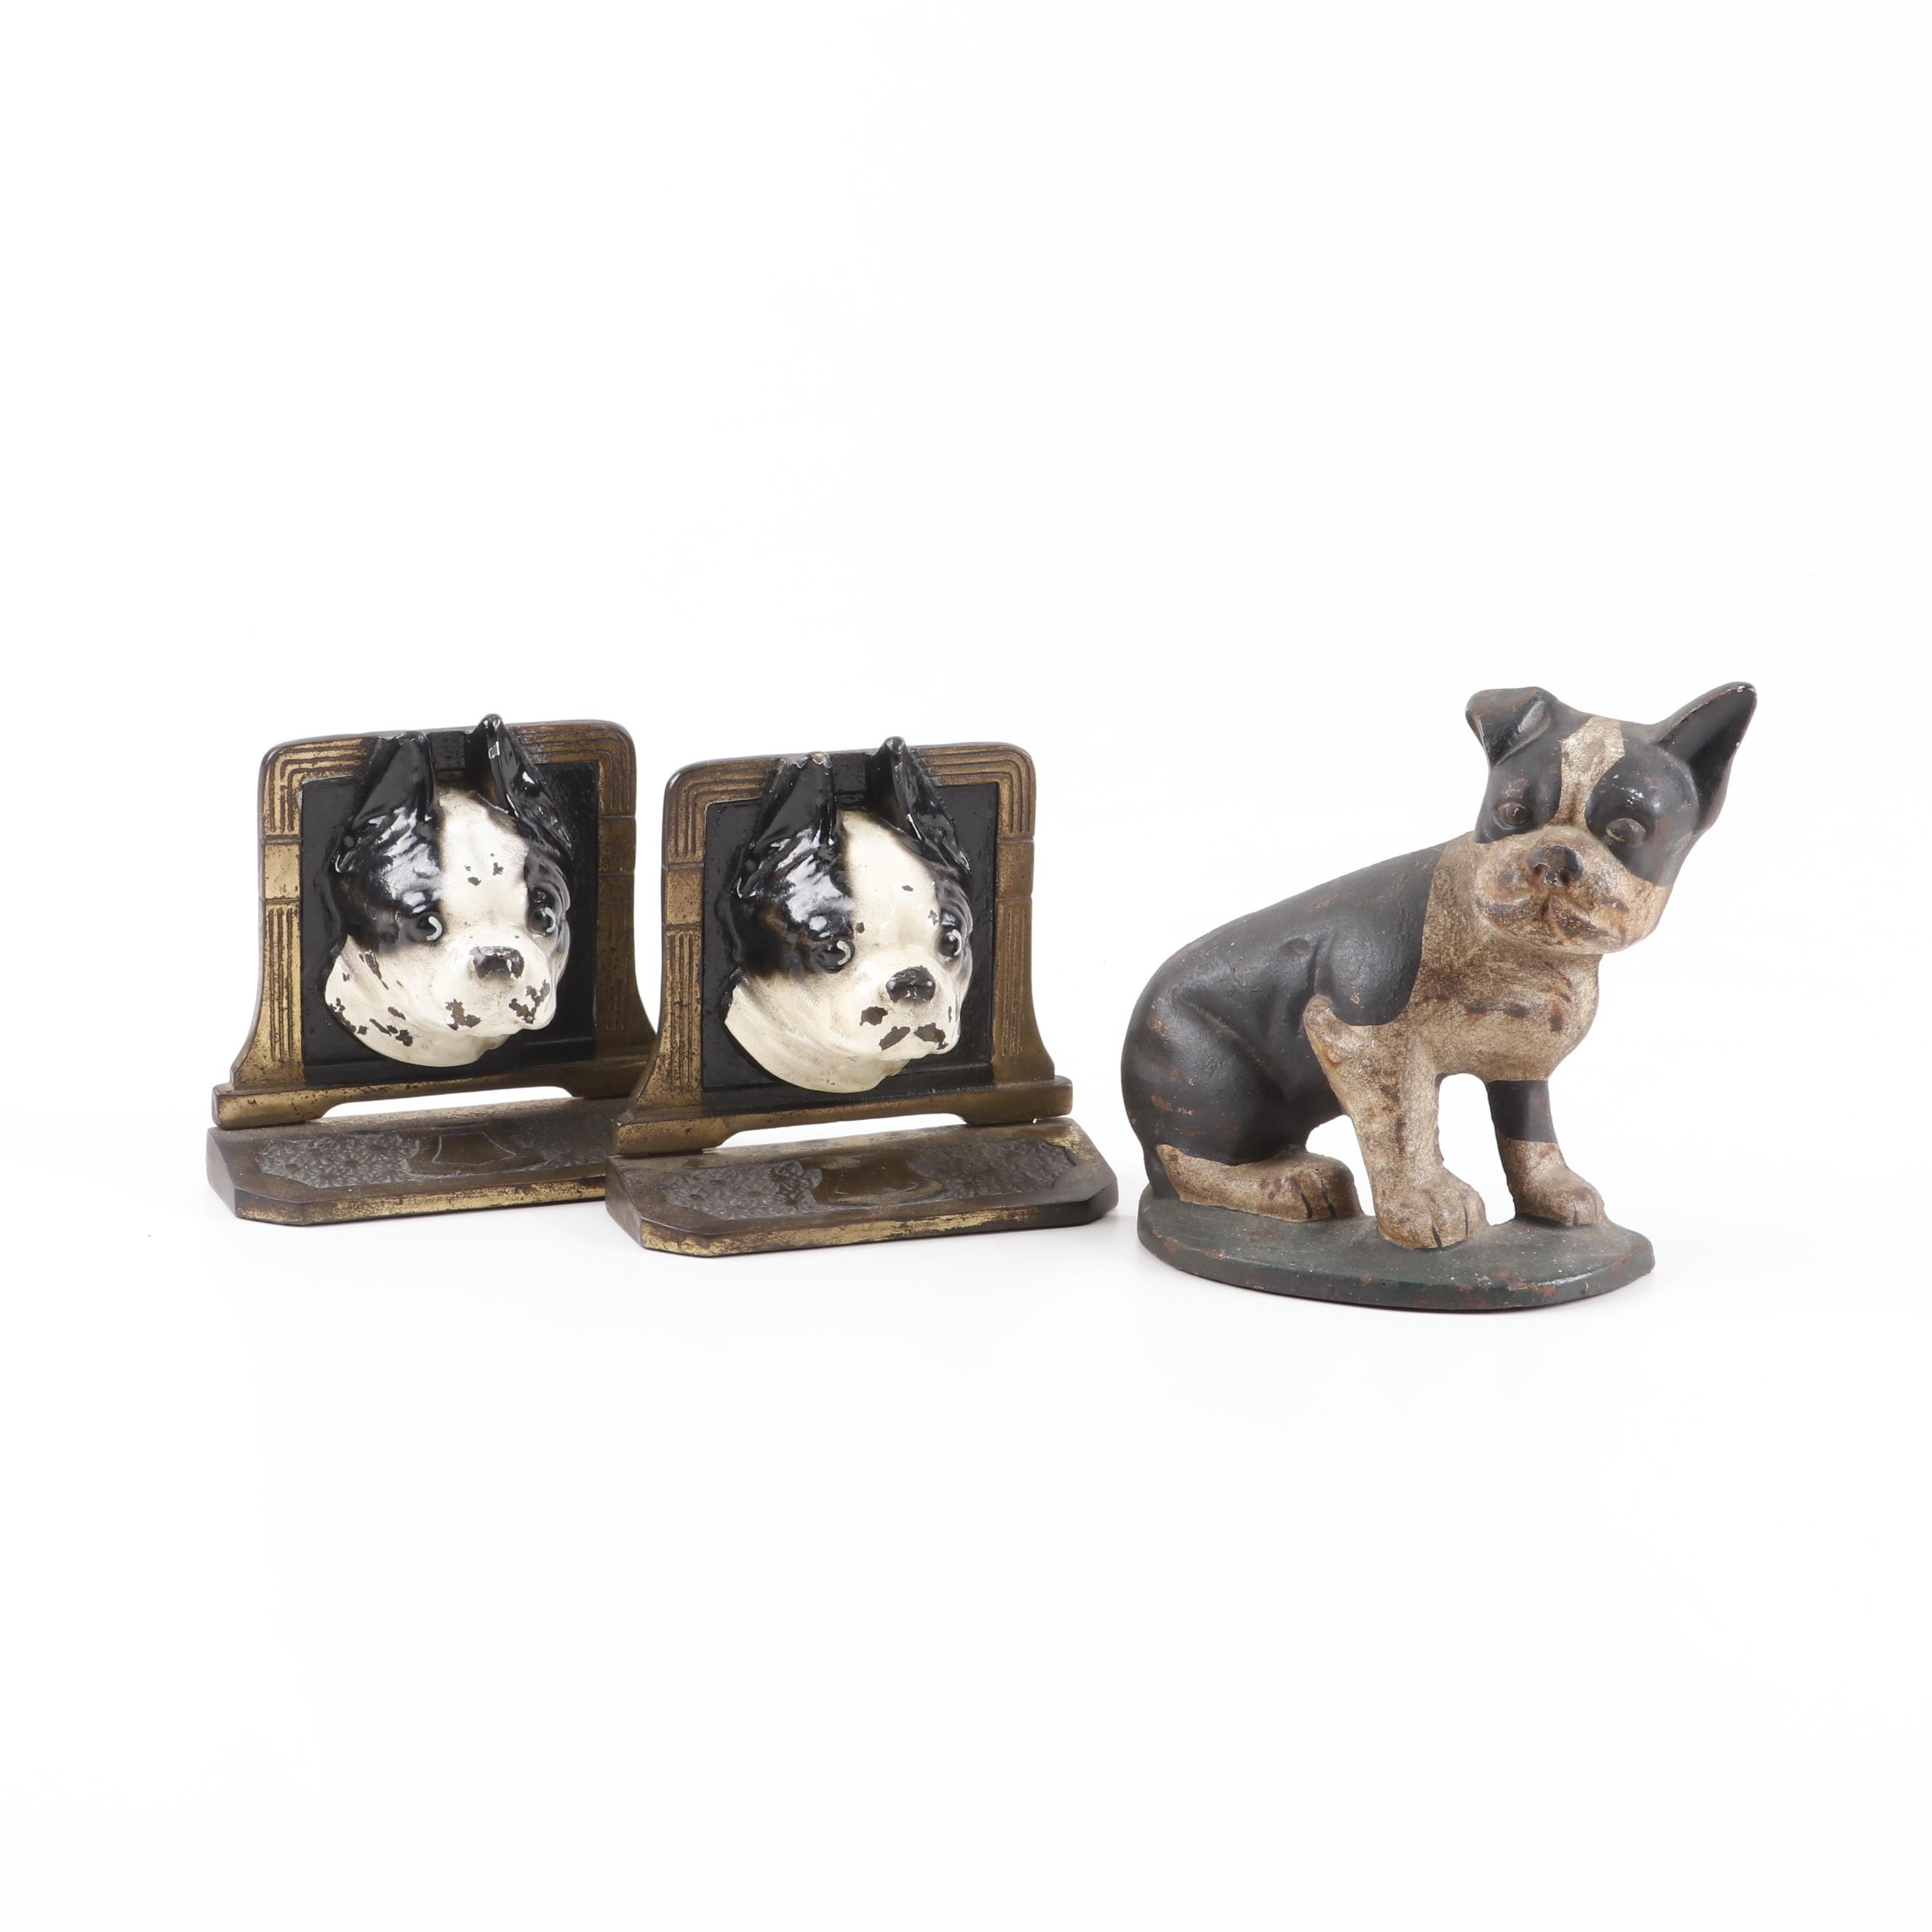 Boston Terrier Dog Cast Brass Bookends and Cast Iron Doorstop, Early 20th Cent.